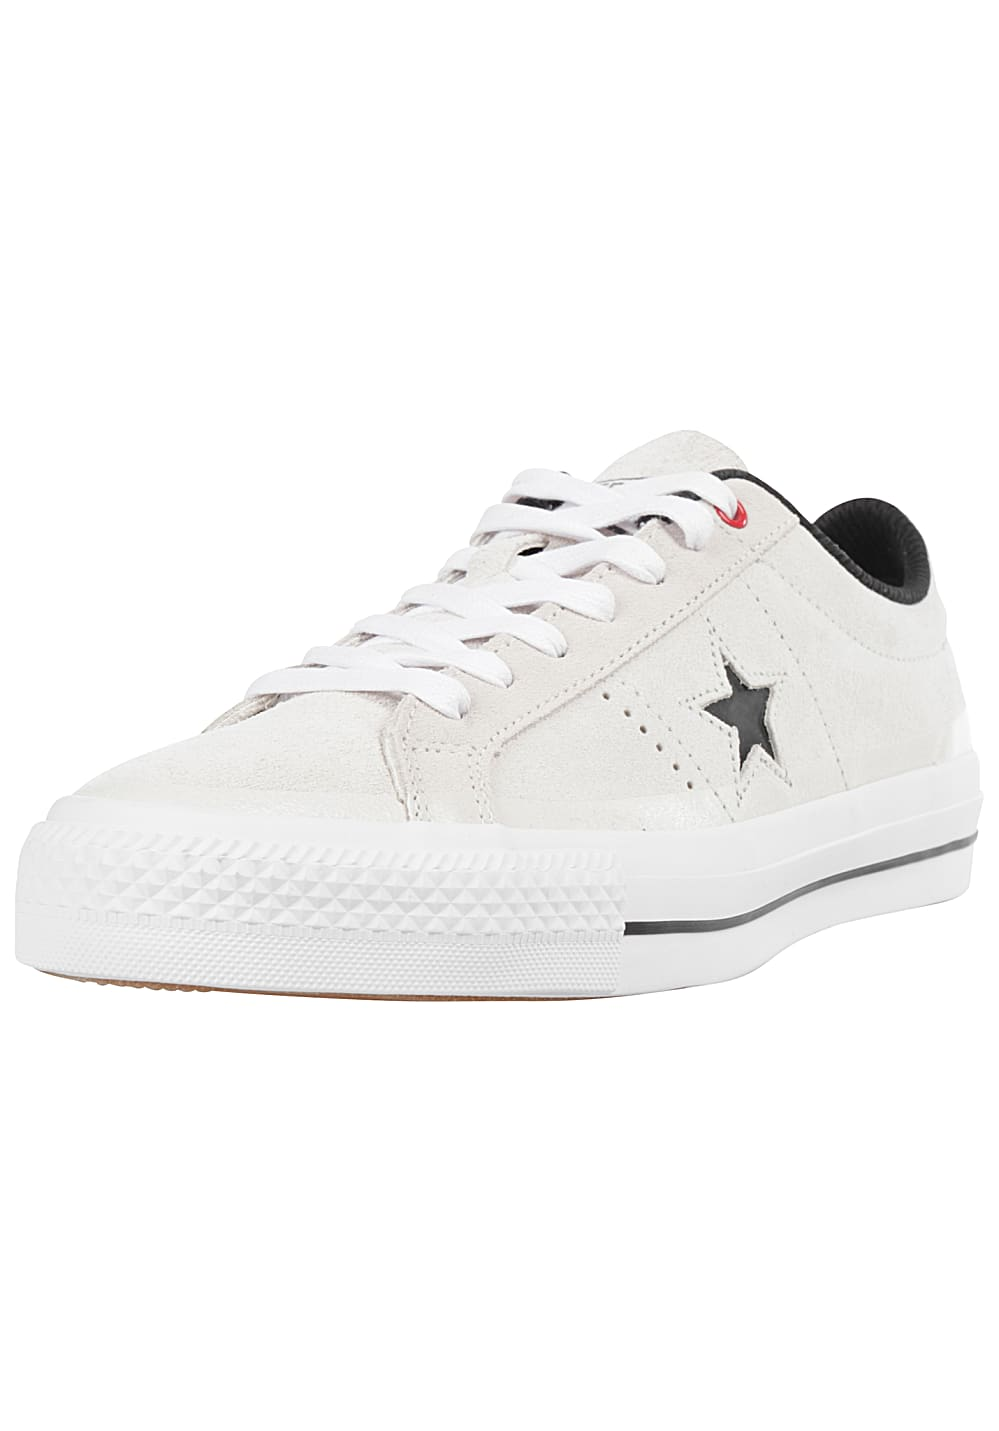 714cc95b677 Converse One Star Pro Suede Ox - Sneakers - White - Planet Sports